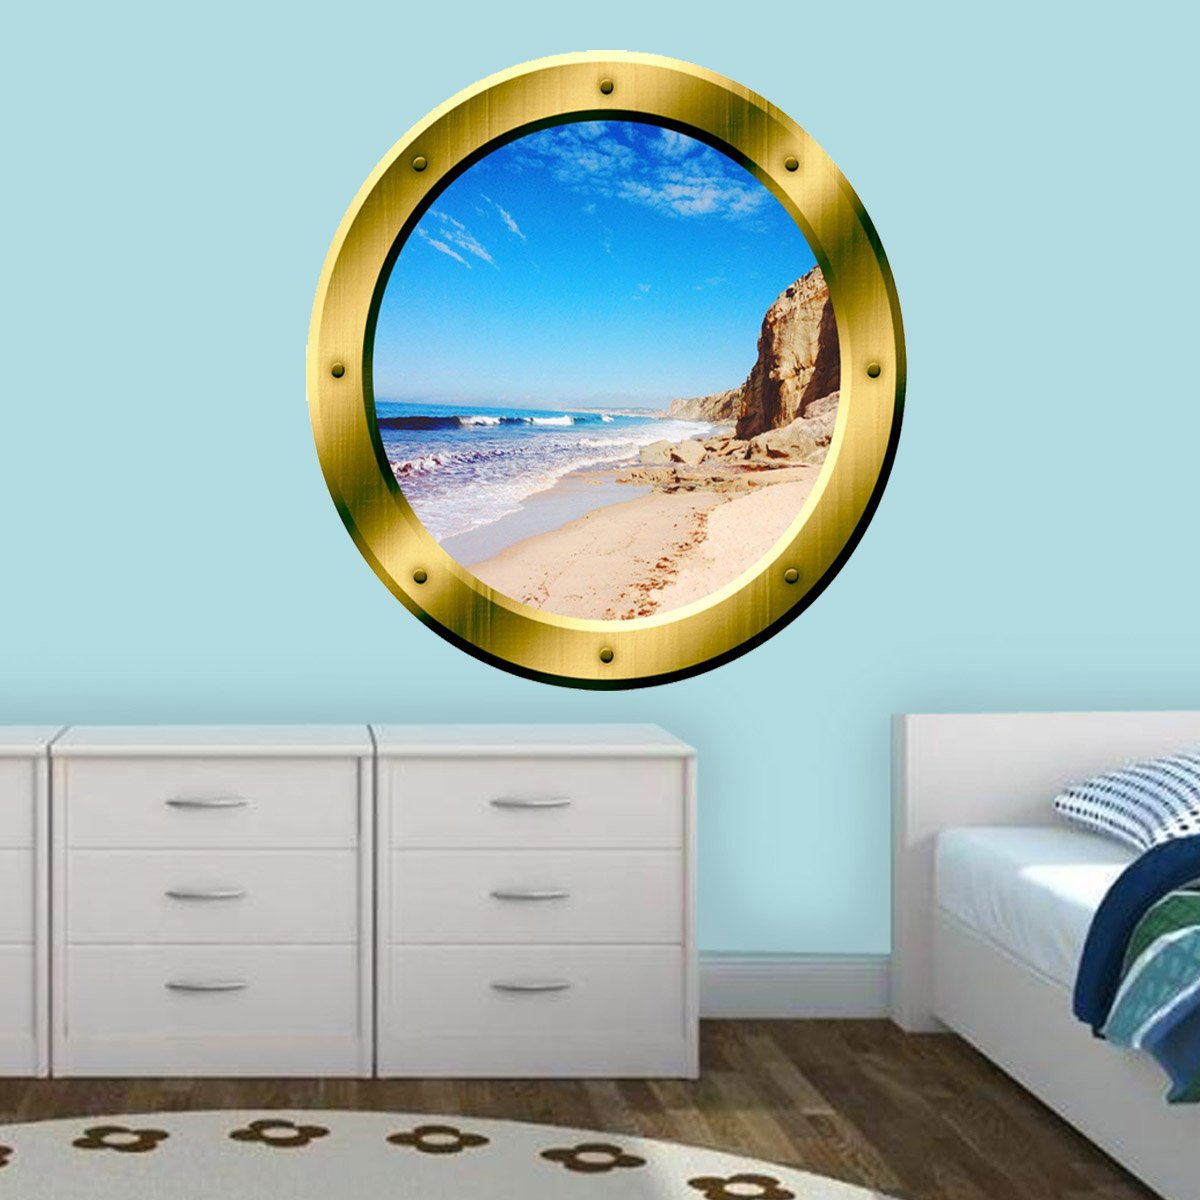 VWAQ Ocean Beach Gold Peel and Stick Porthole Window Wall Decal - VWAQ Vinyl Wall Art Quotes and Prints